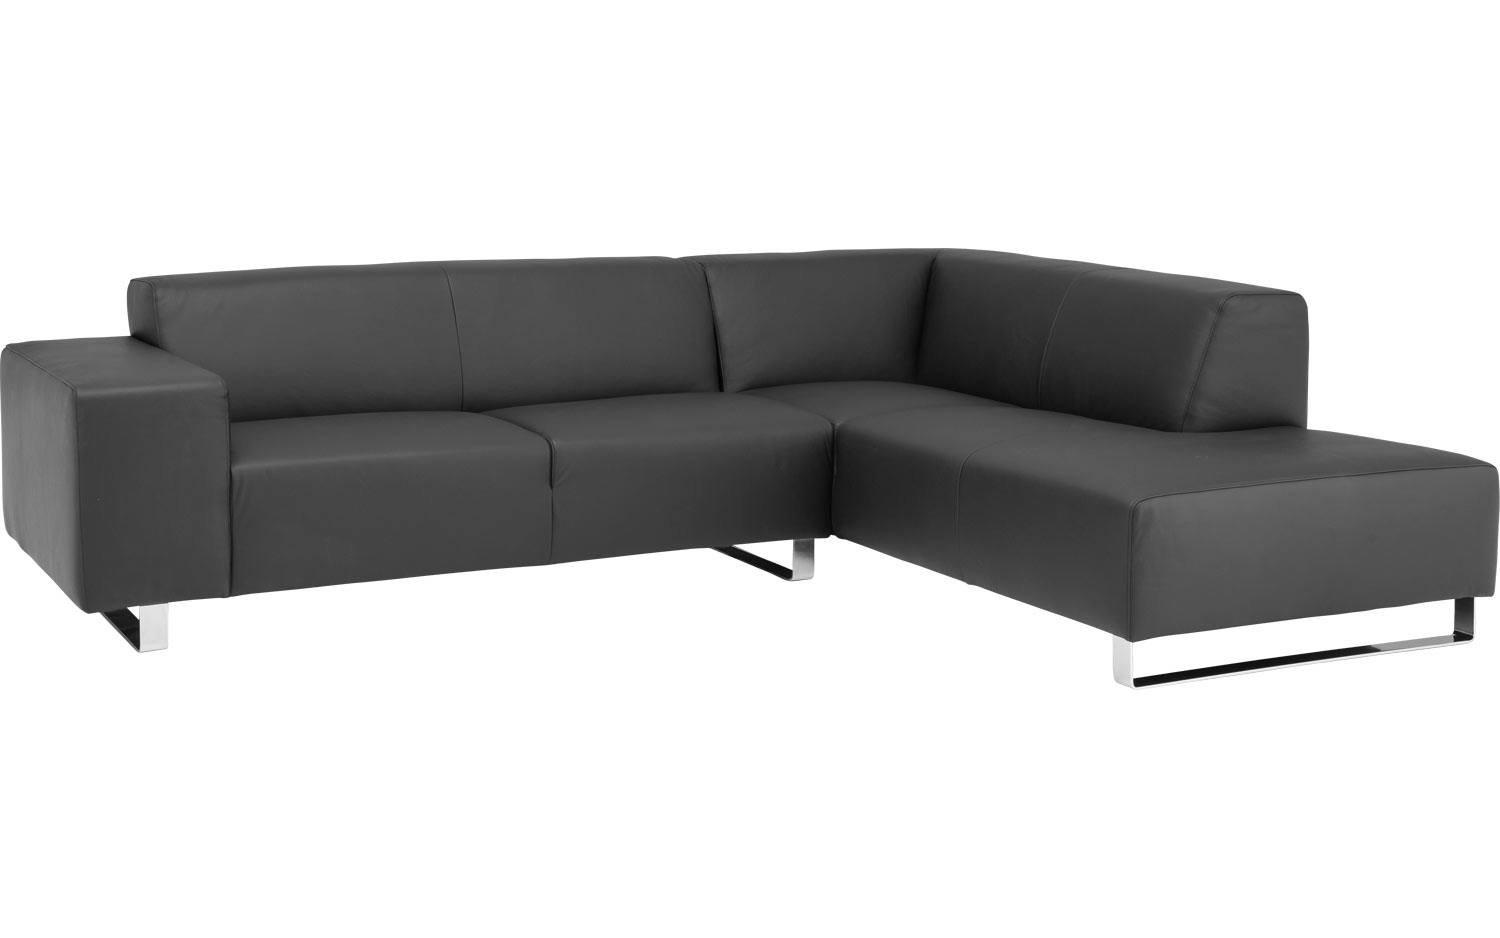 Ecksofa Design At Home Schwarz Leder Kopen Goossens